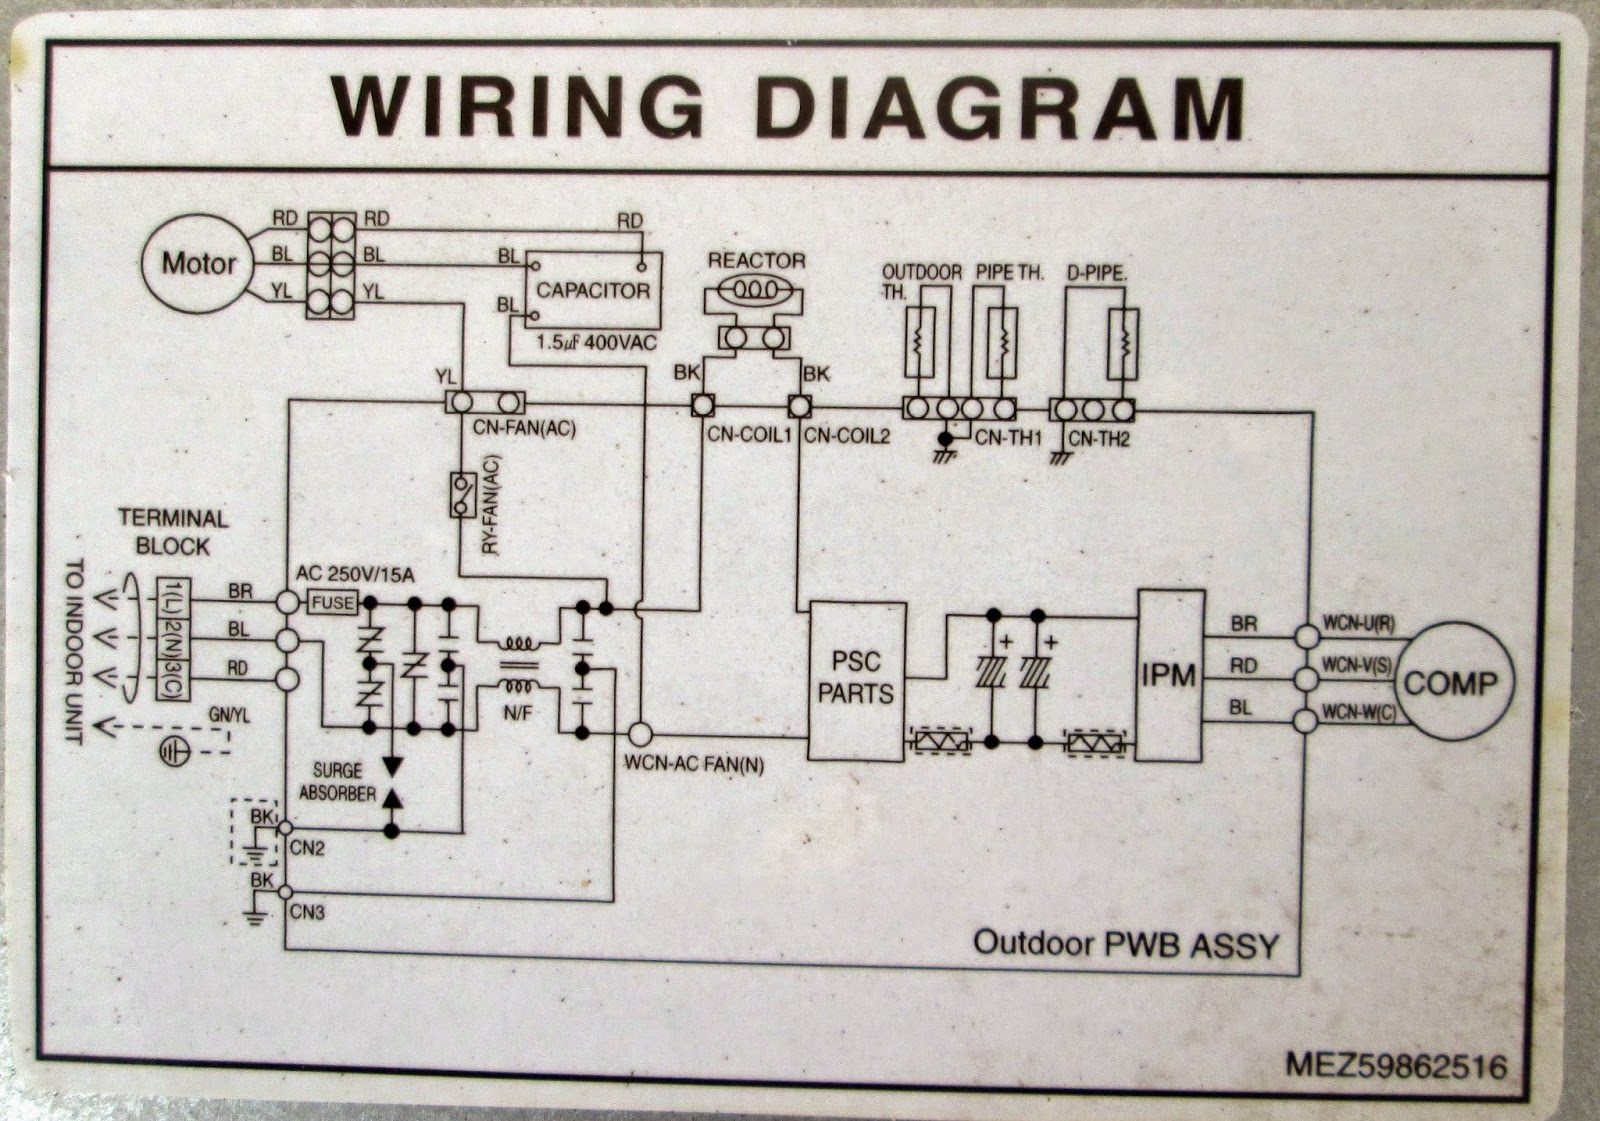 ... WD%2Bsharp%2Binverter%2B2 28 [ inverter aircon wiring diagram ]  electrical wiring lg split type air conditioner wiring diagram